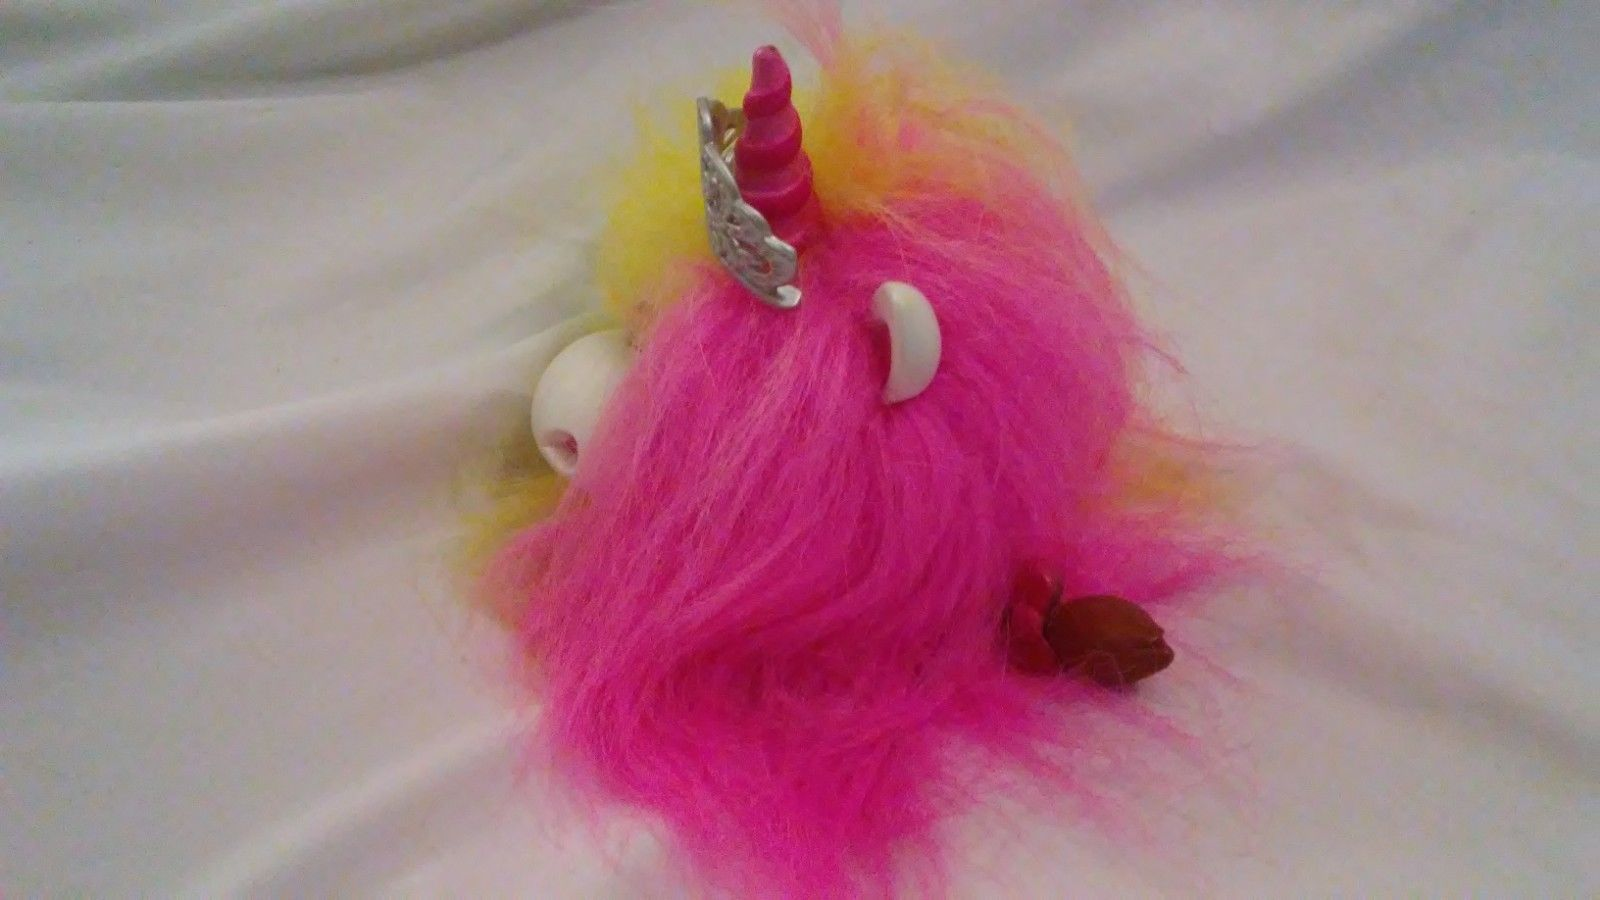 Kachooz! Princess Unicorn Talking Fluff with Cute Tail - Tested and Works